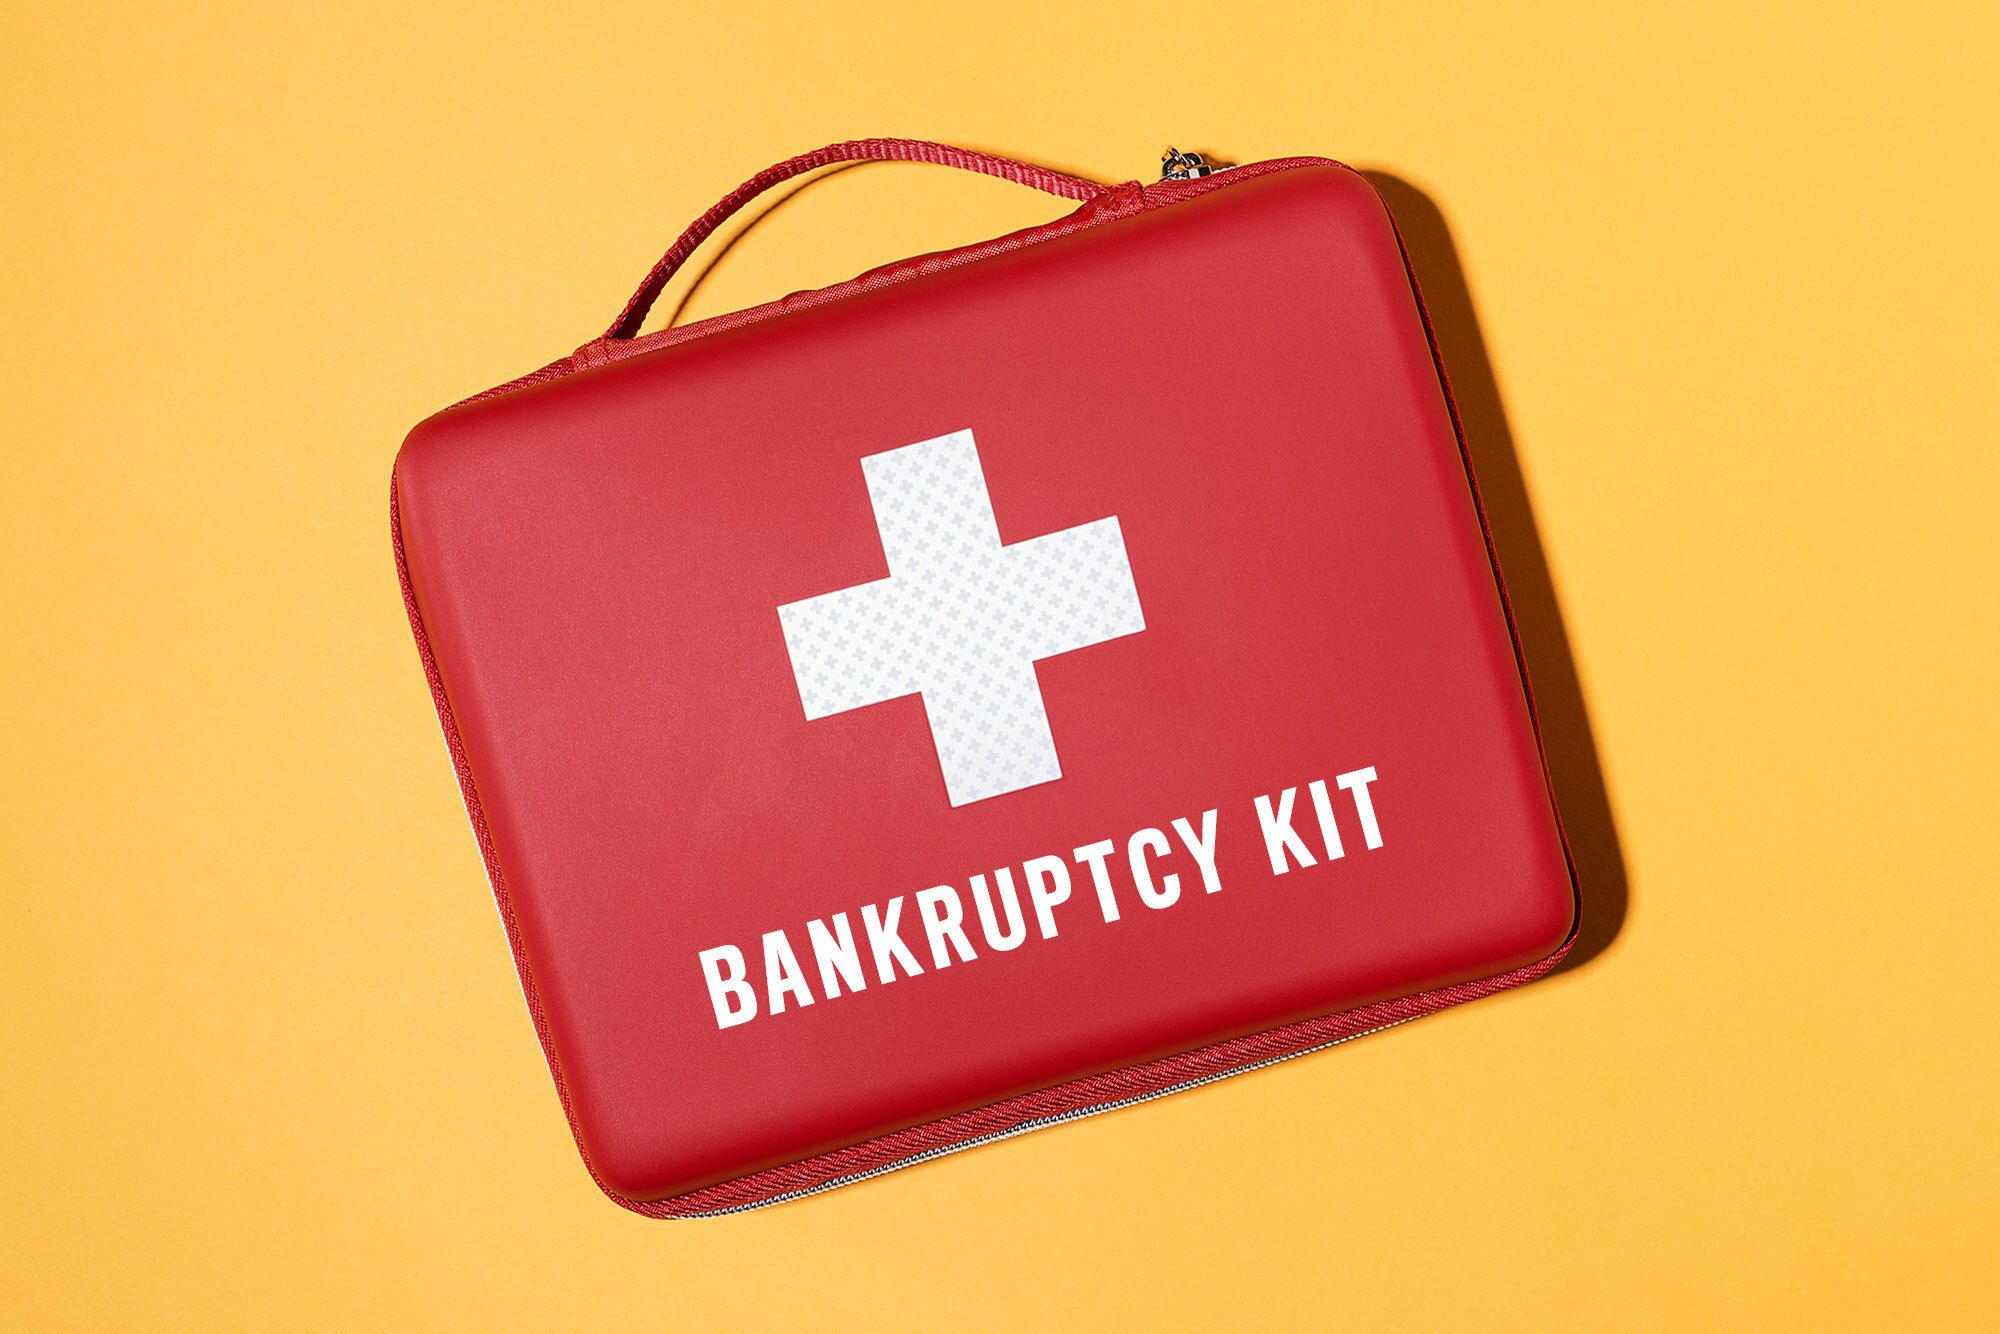 Bankruptcy first aid kit